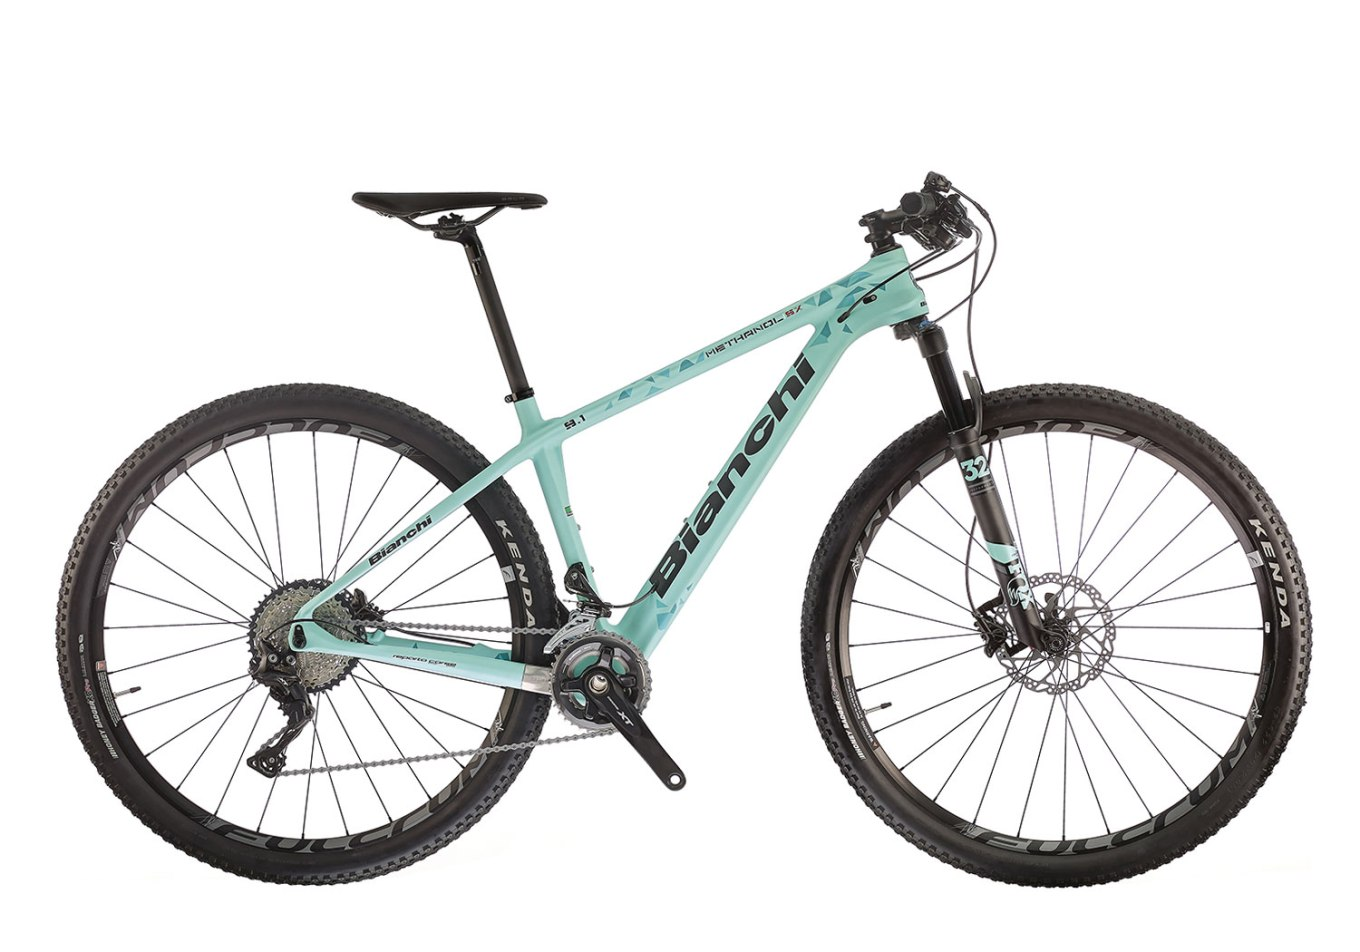 La mountain bike front da cross country Bianchi Methanol 29.1 SX (www.bianchi.com)